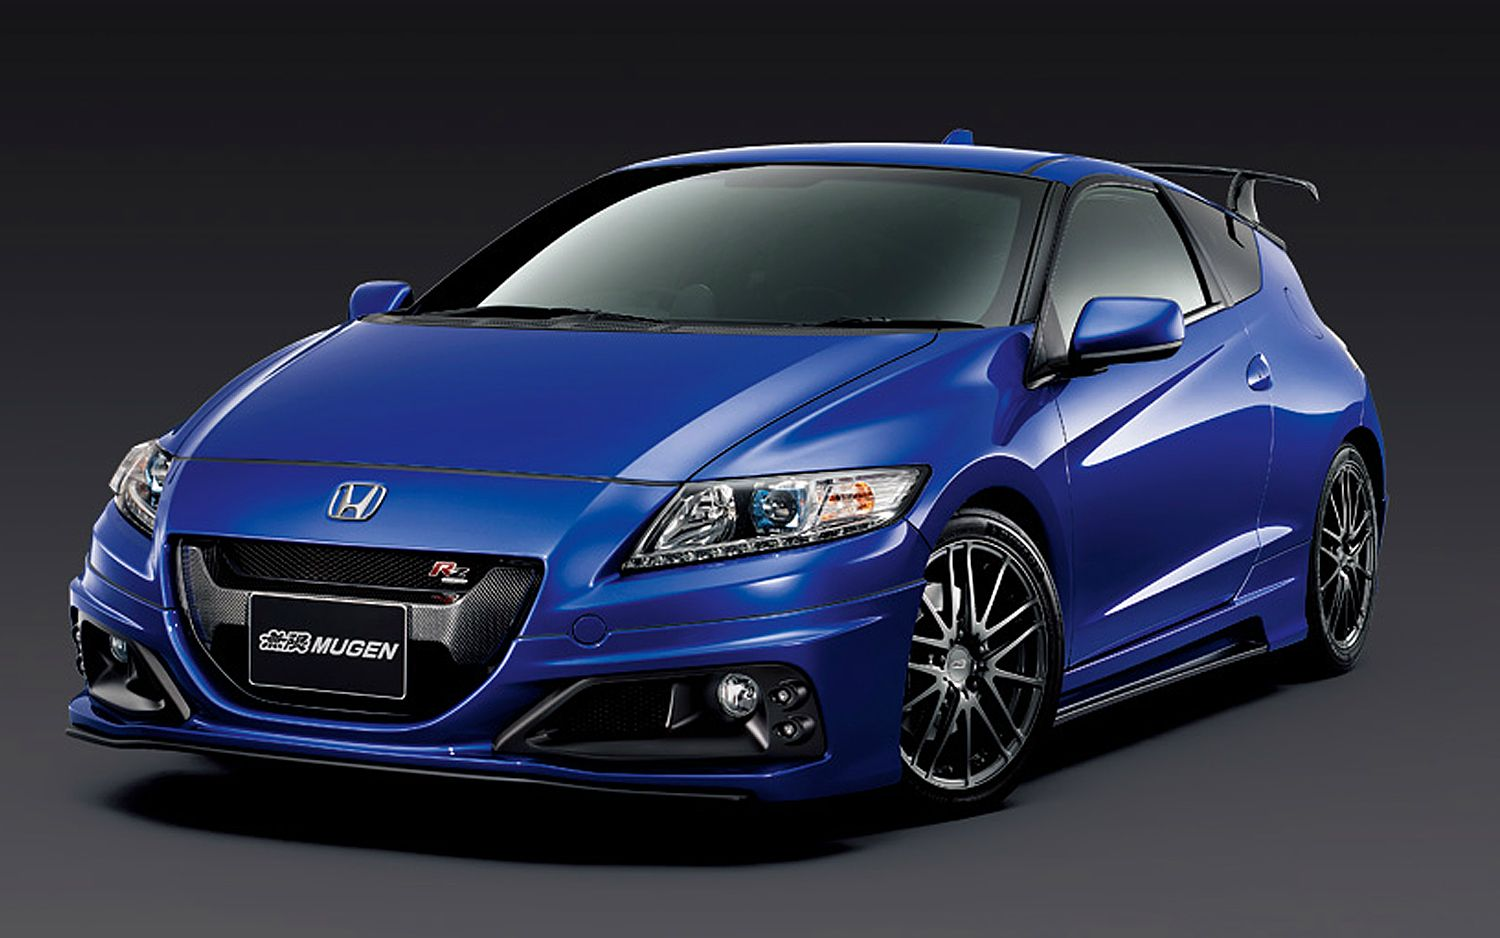 Mugen Debuts New Honda CR Z MUGEN RZ In The Quest To Squeeze Highest Level Of Performance And Biggest Numbers Out